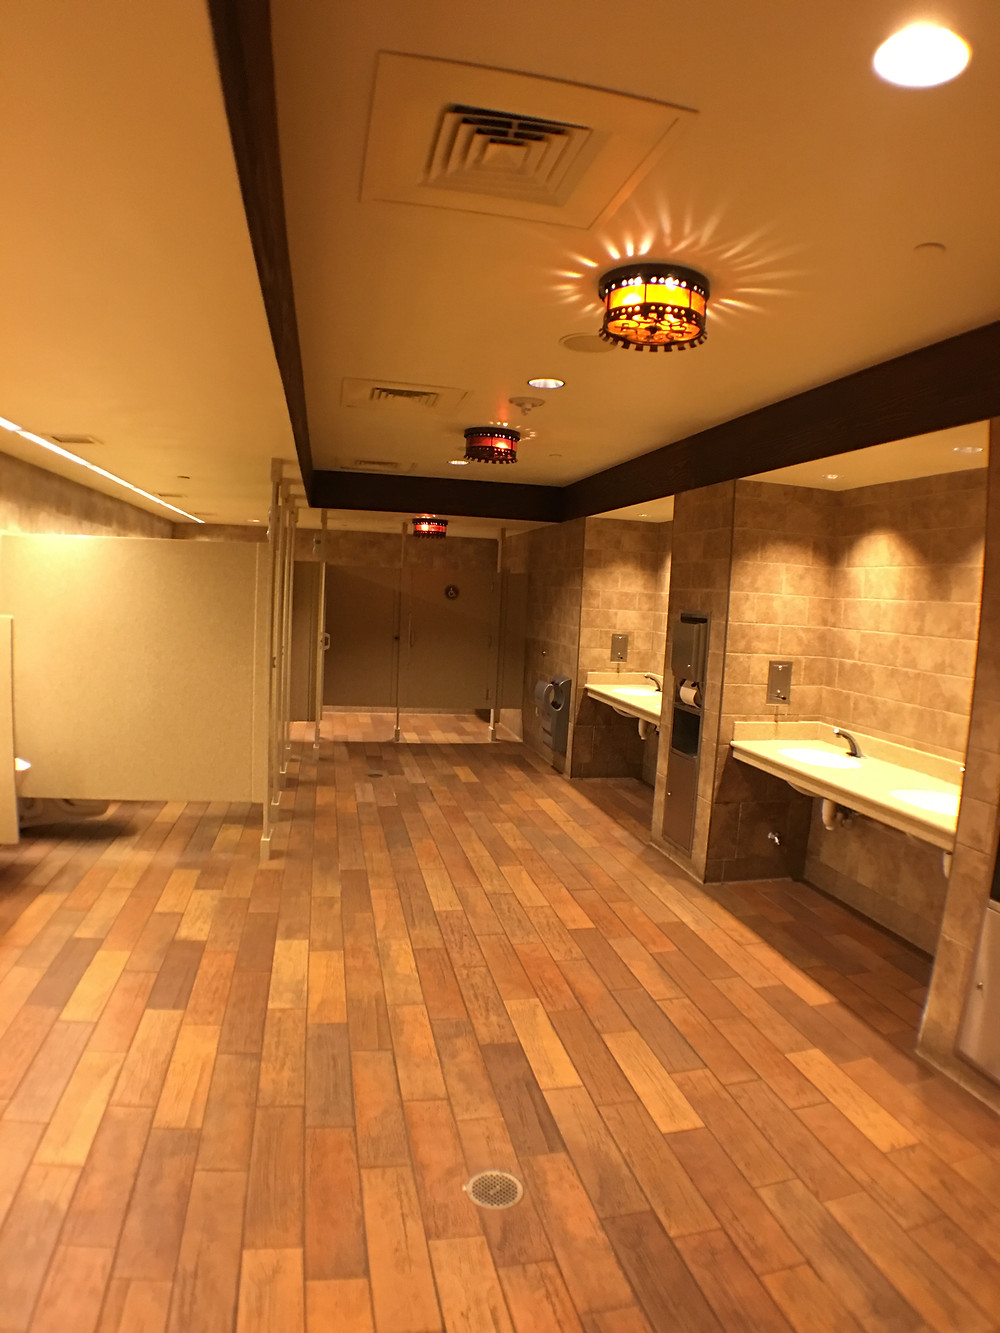 View of the Gaston's Tavern Restroom from the Entry/Exit